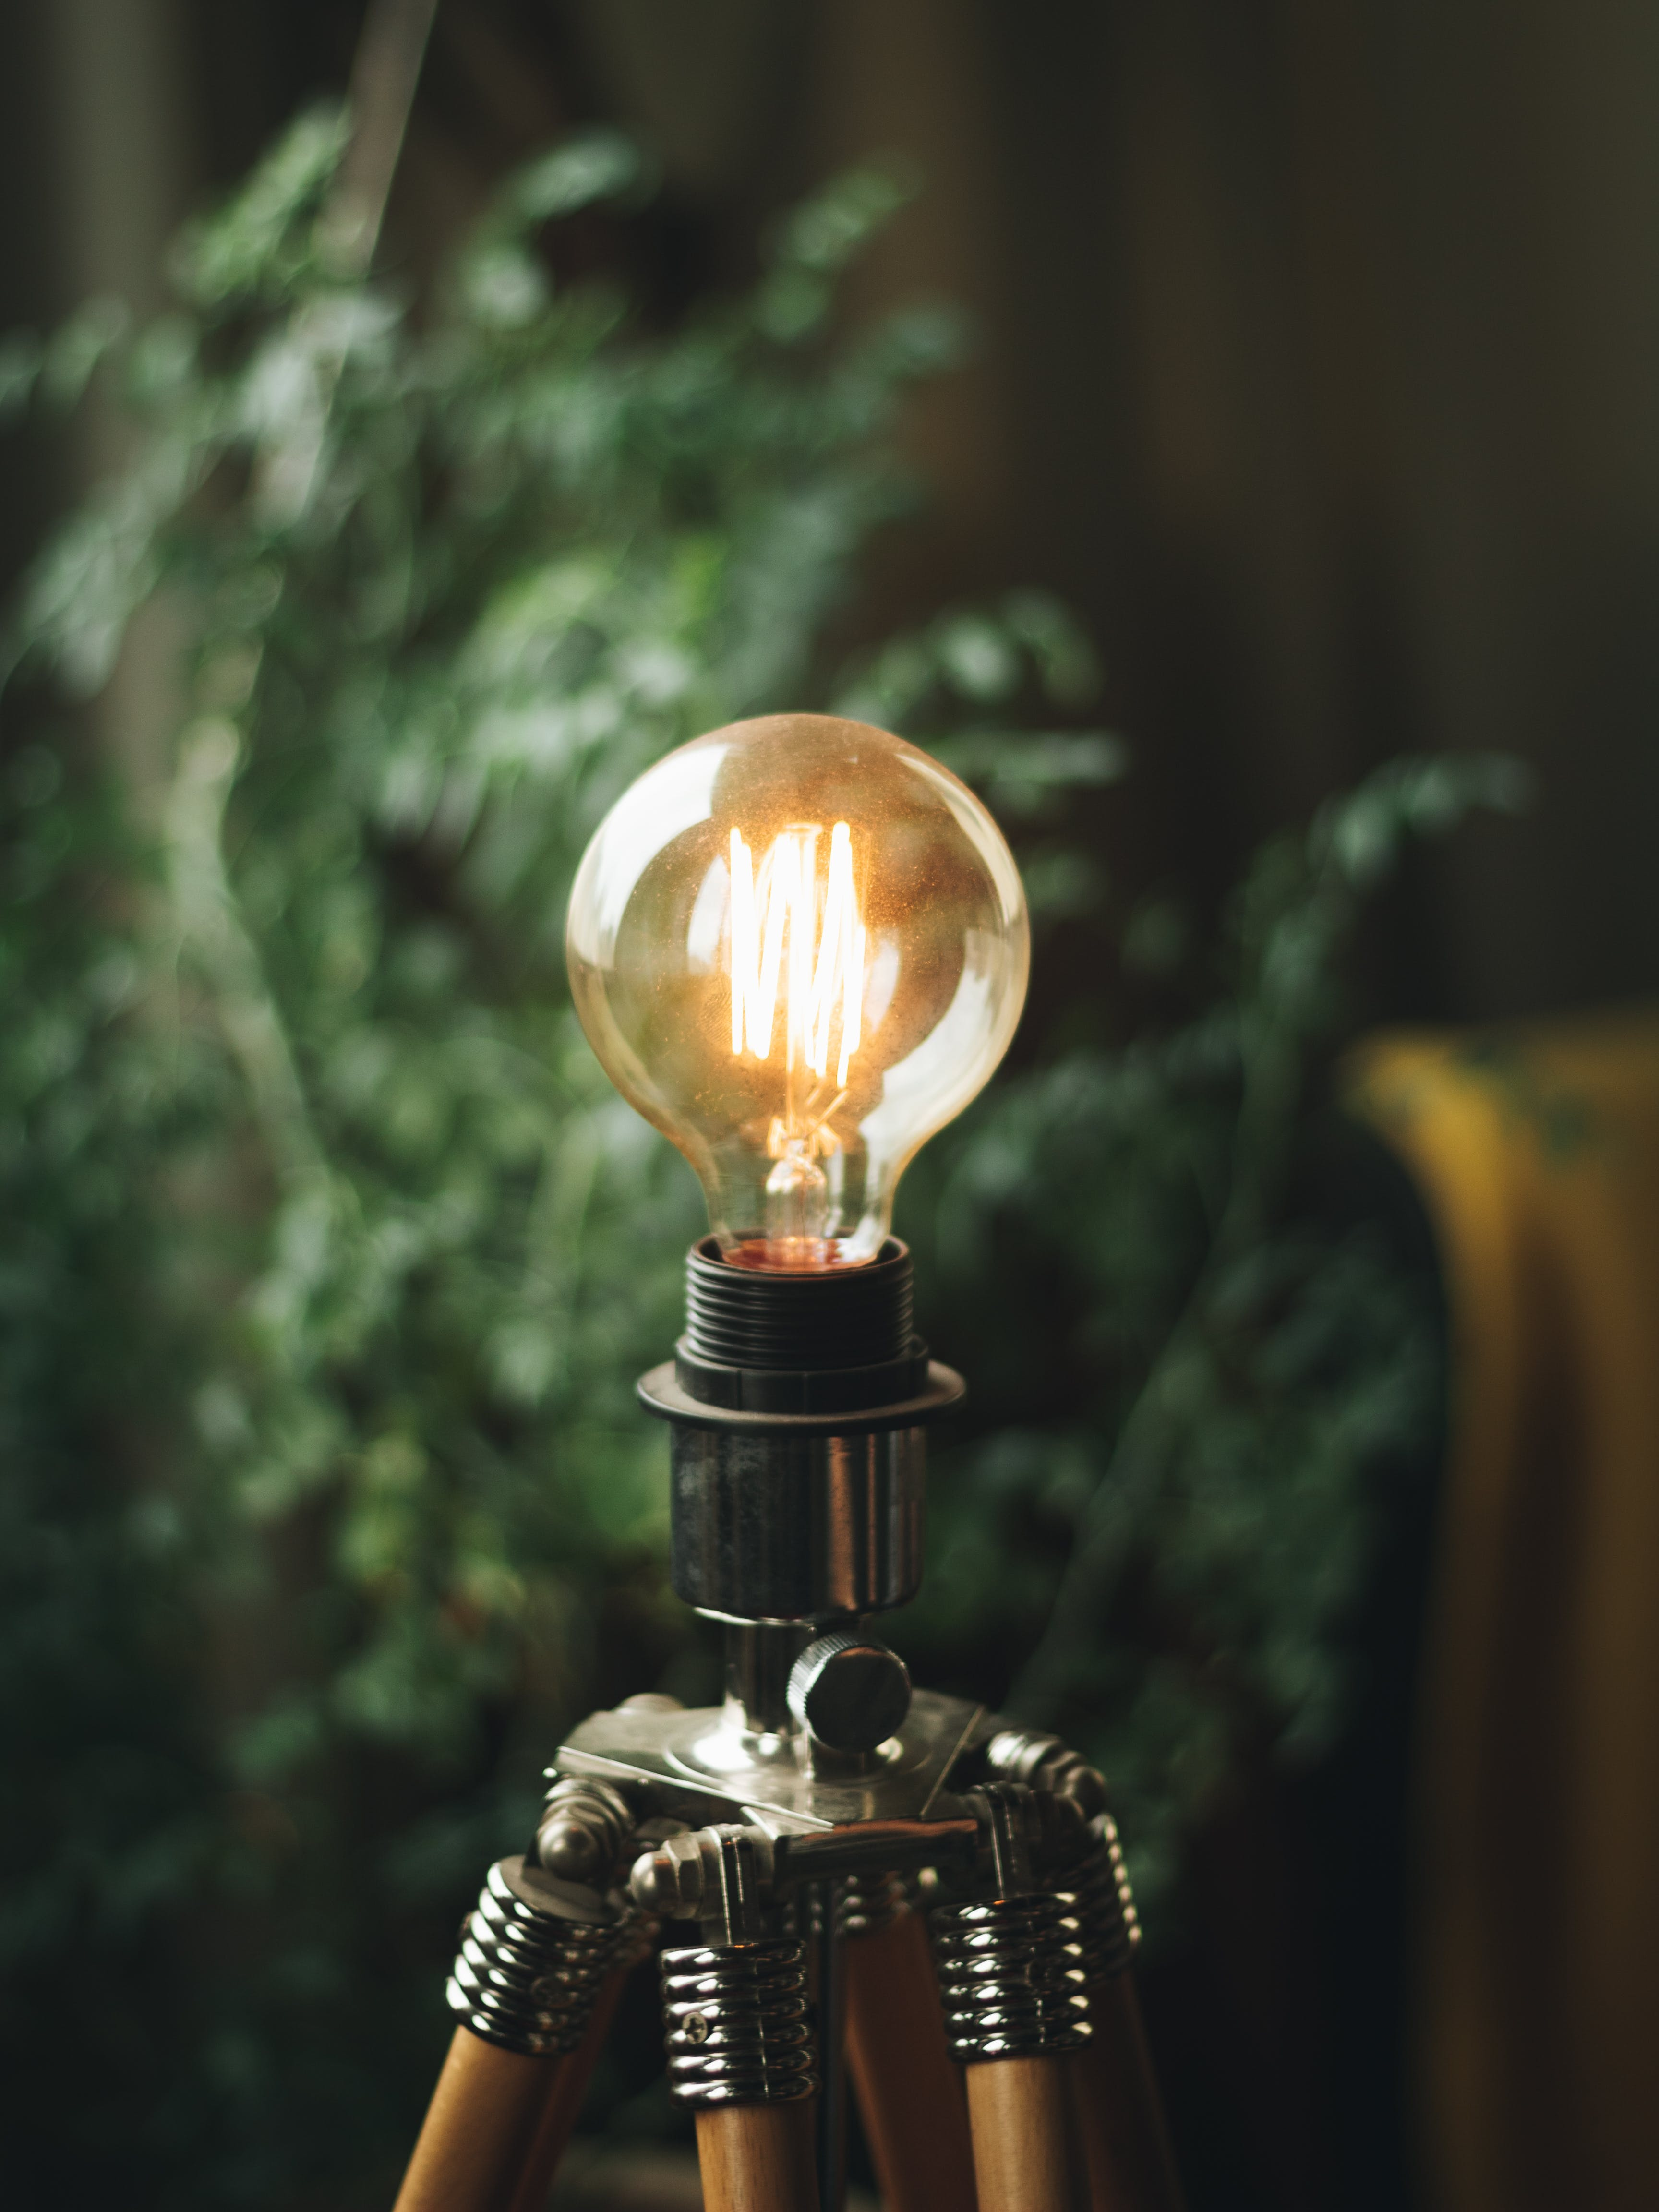 Selective Focus Photography of Bulb